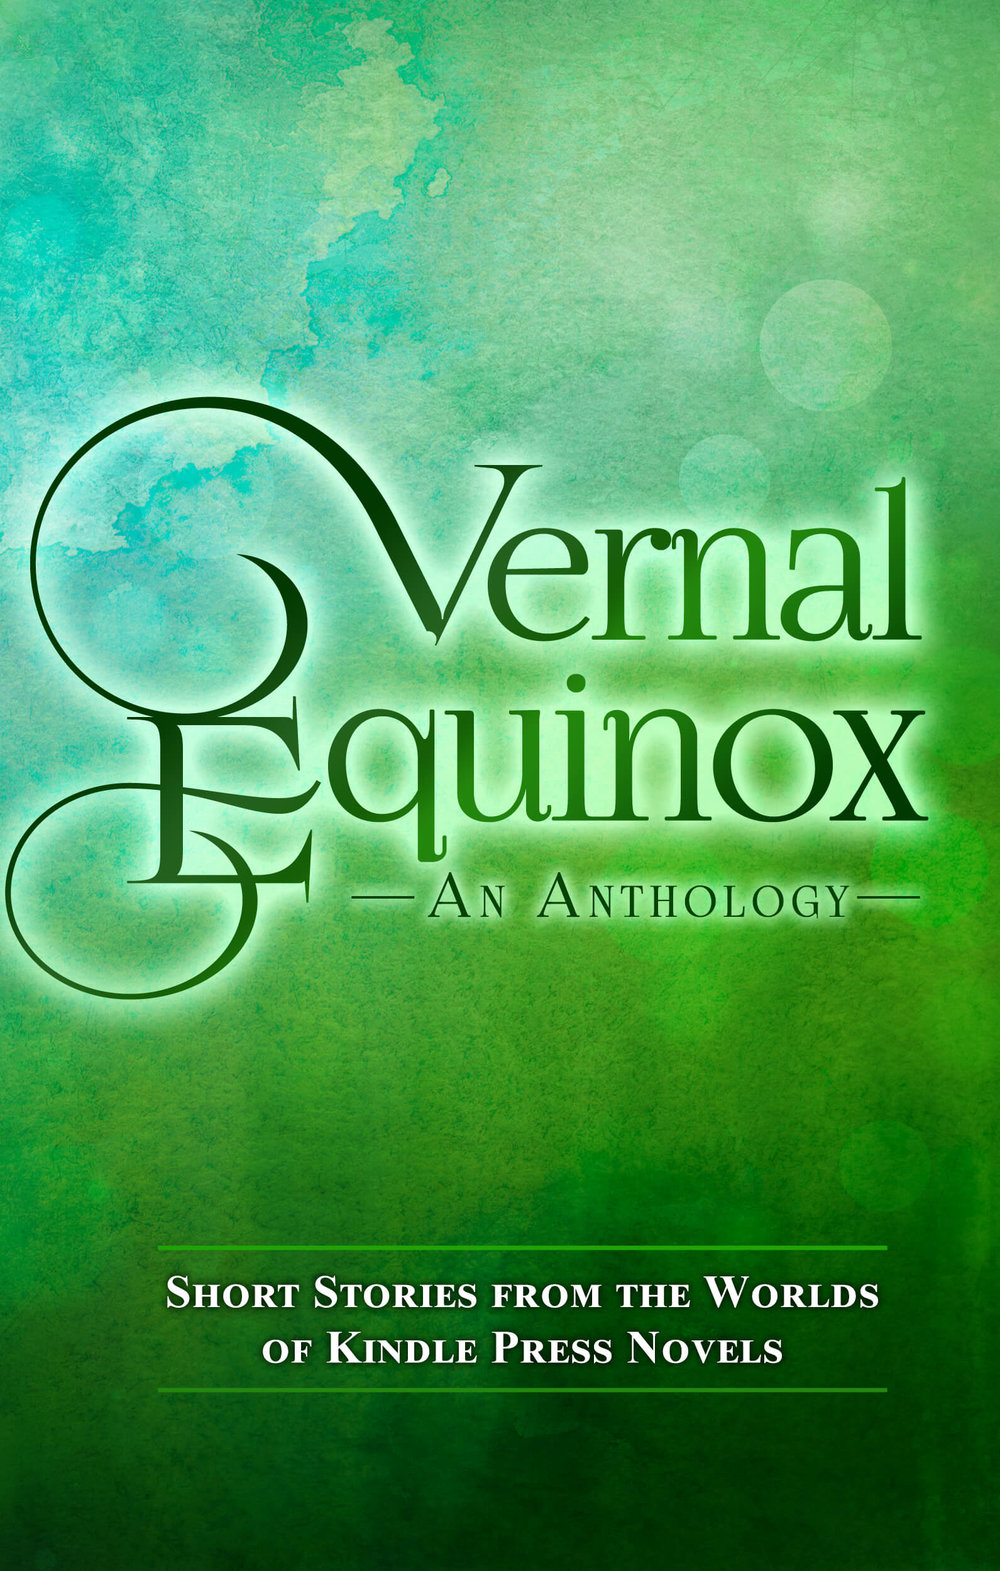 Vernal Equinox - A collection of short stories by Kindle Press published authors set in the worlds of their novels, themed around the idea of redemption, rebirth, and new beginnings. Check out these stories and then find your way into their books, published through Reader Powered Publishing on Amazon's Kindle Scout program!